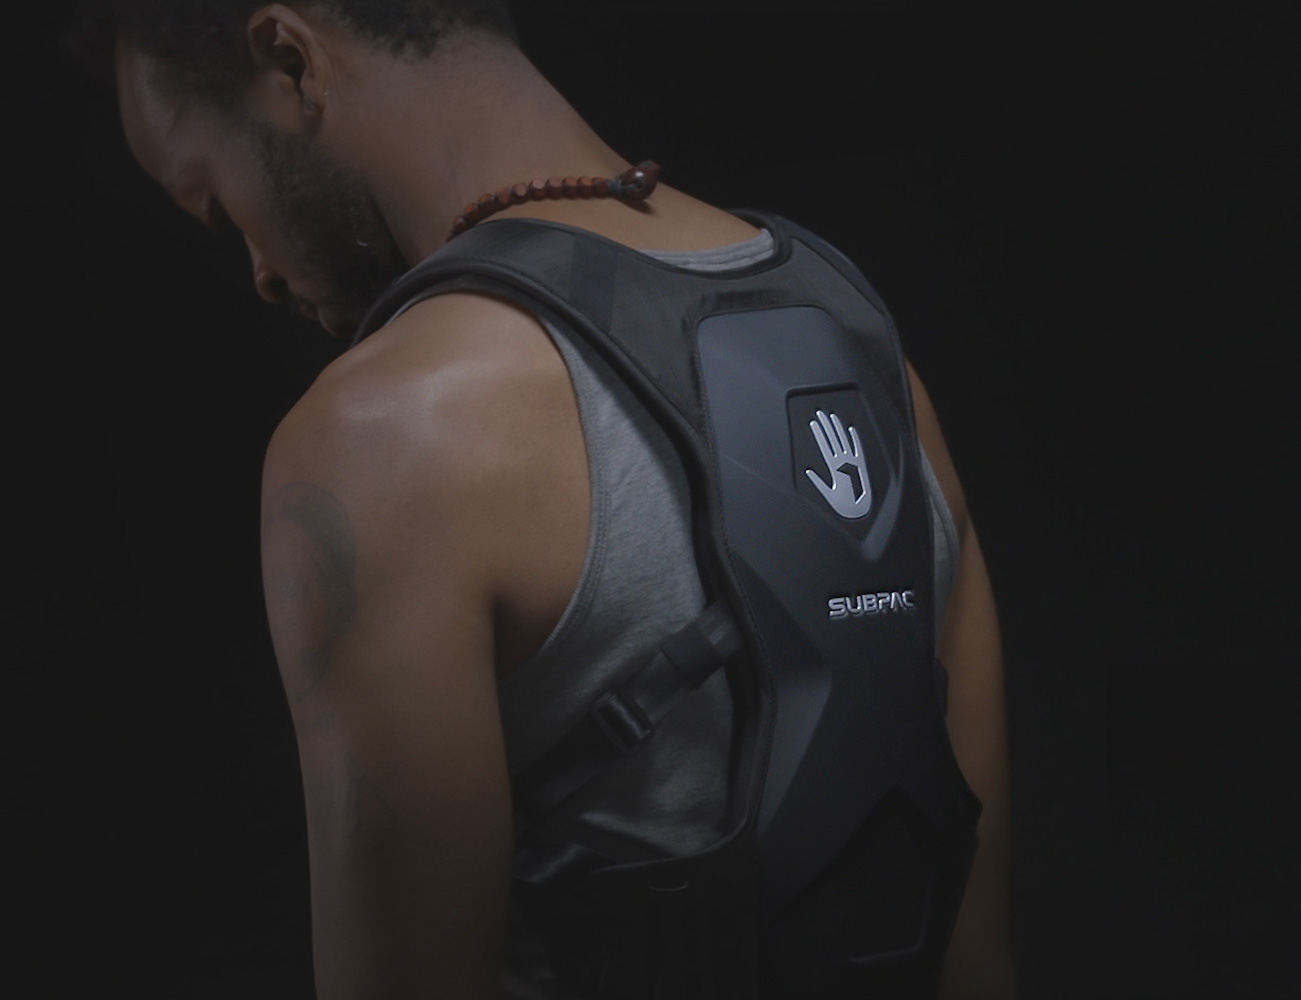 SUBPAC M2 Wearable Bass System immerses you in your music